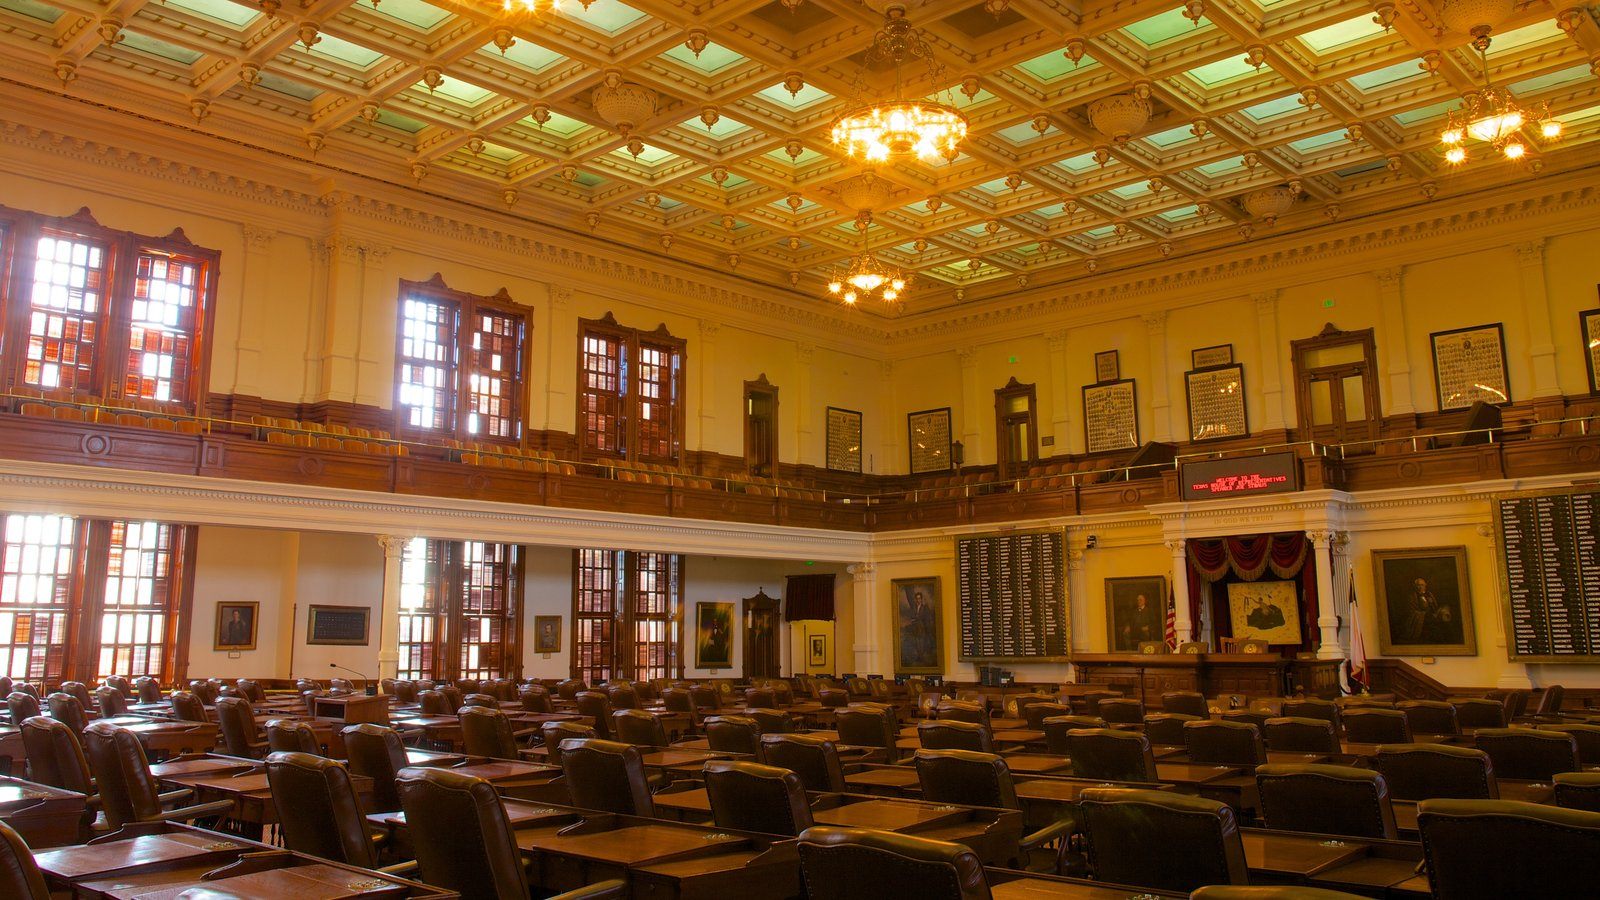 Texas State Capitol which includes heritage architecture, interior views and an administrative buidling